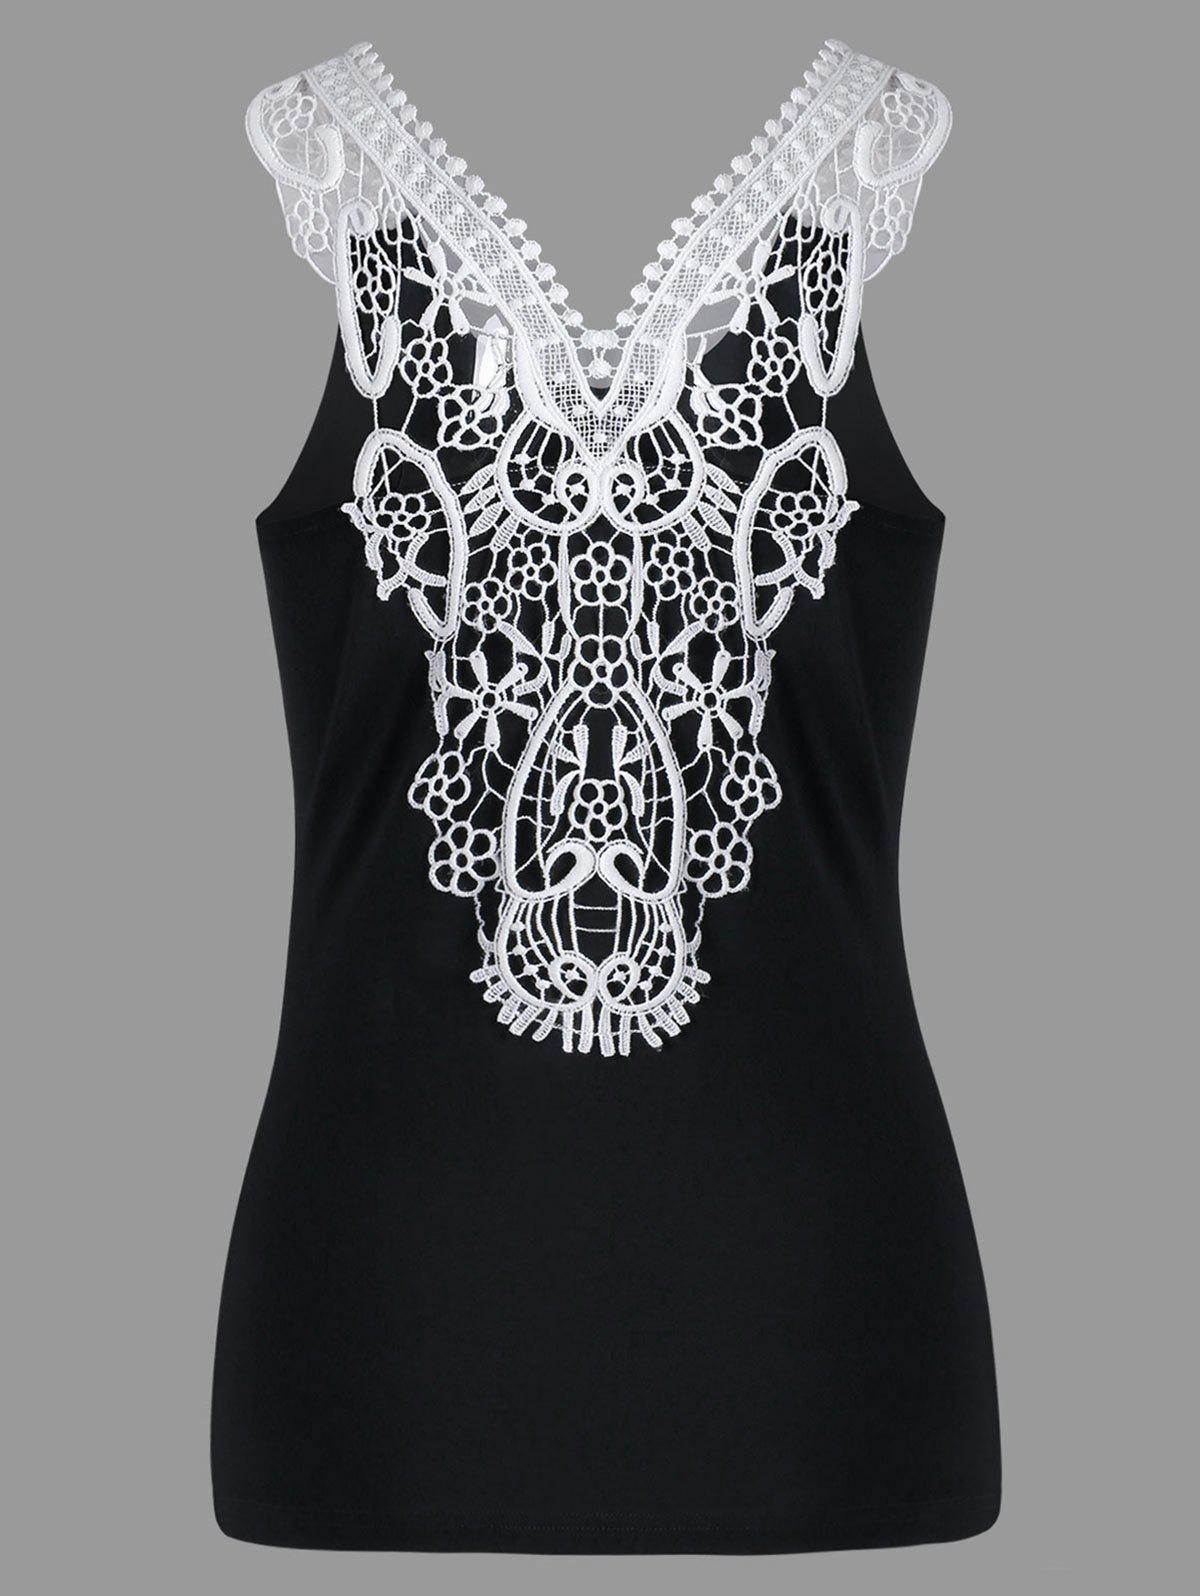 Cutwork Lace Trim Slim Tank TopWOMEN<br><br>Size: 2XL; Color: BLACK; Material: Rayon,Spandex; Shirt Length: Short; Pattern Type: Others; Embellishment: Lace; Style: Casual; Weight: 0.1900kg; Package Contents: 1 x Tank Top;